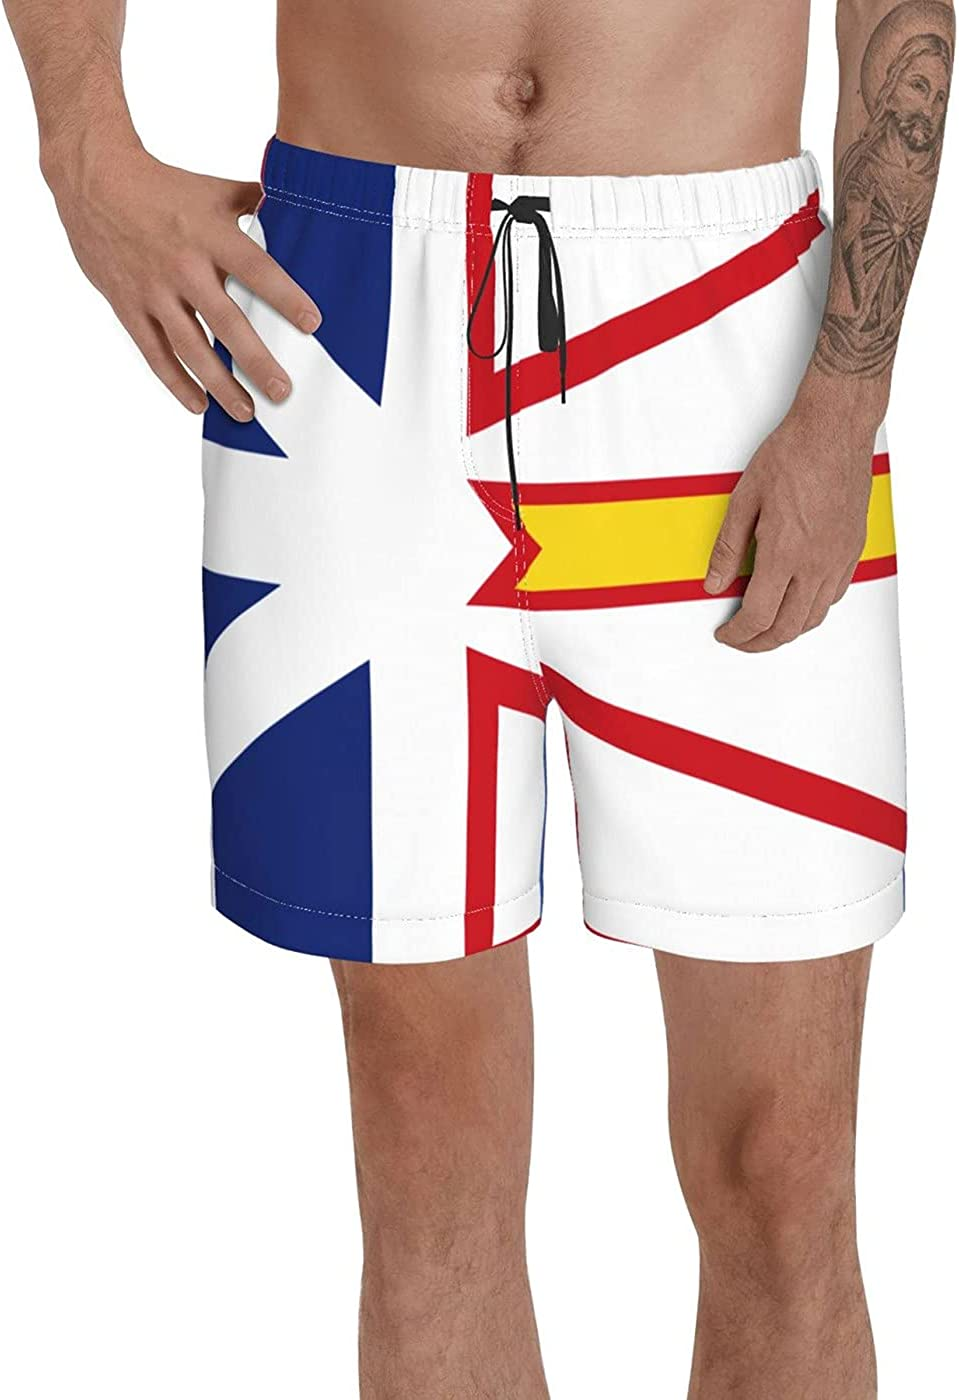 Count Newfounfland and Labrador Flag Men's 3D Printed Funny Summer Quick Dry Swim Short Board Shorts with